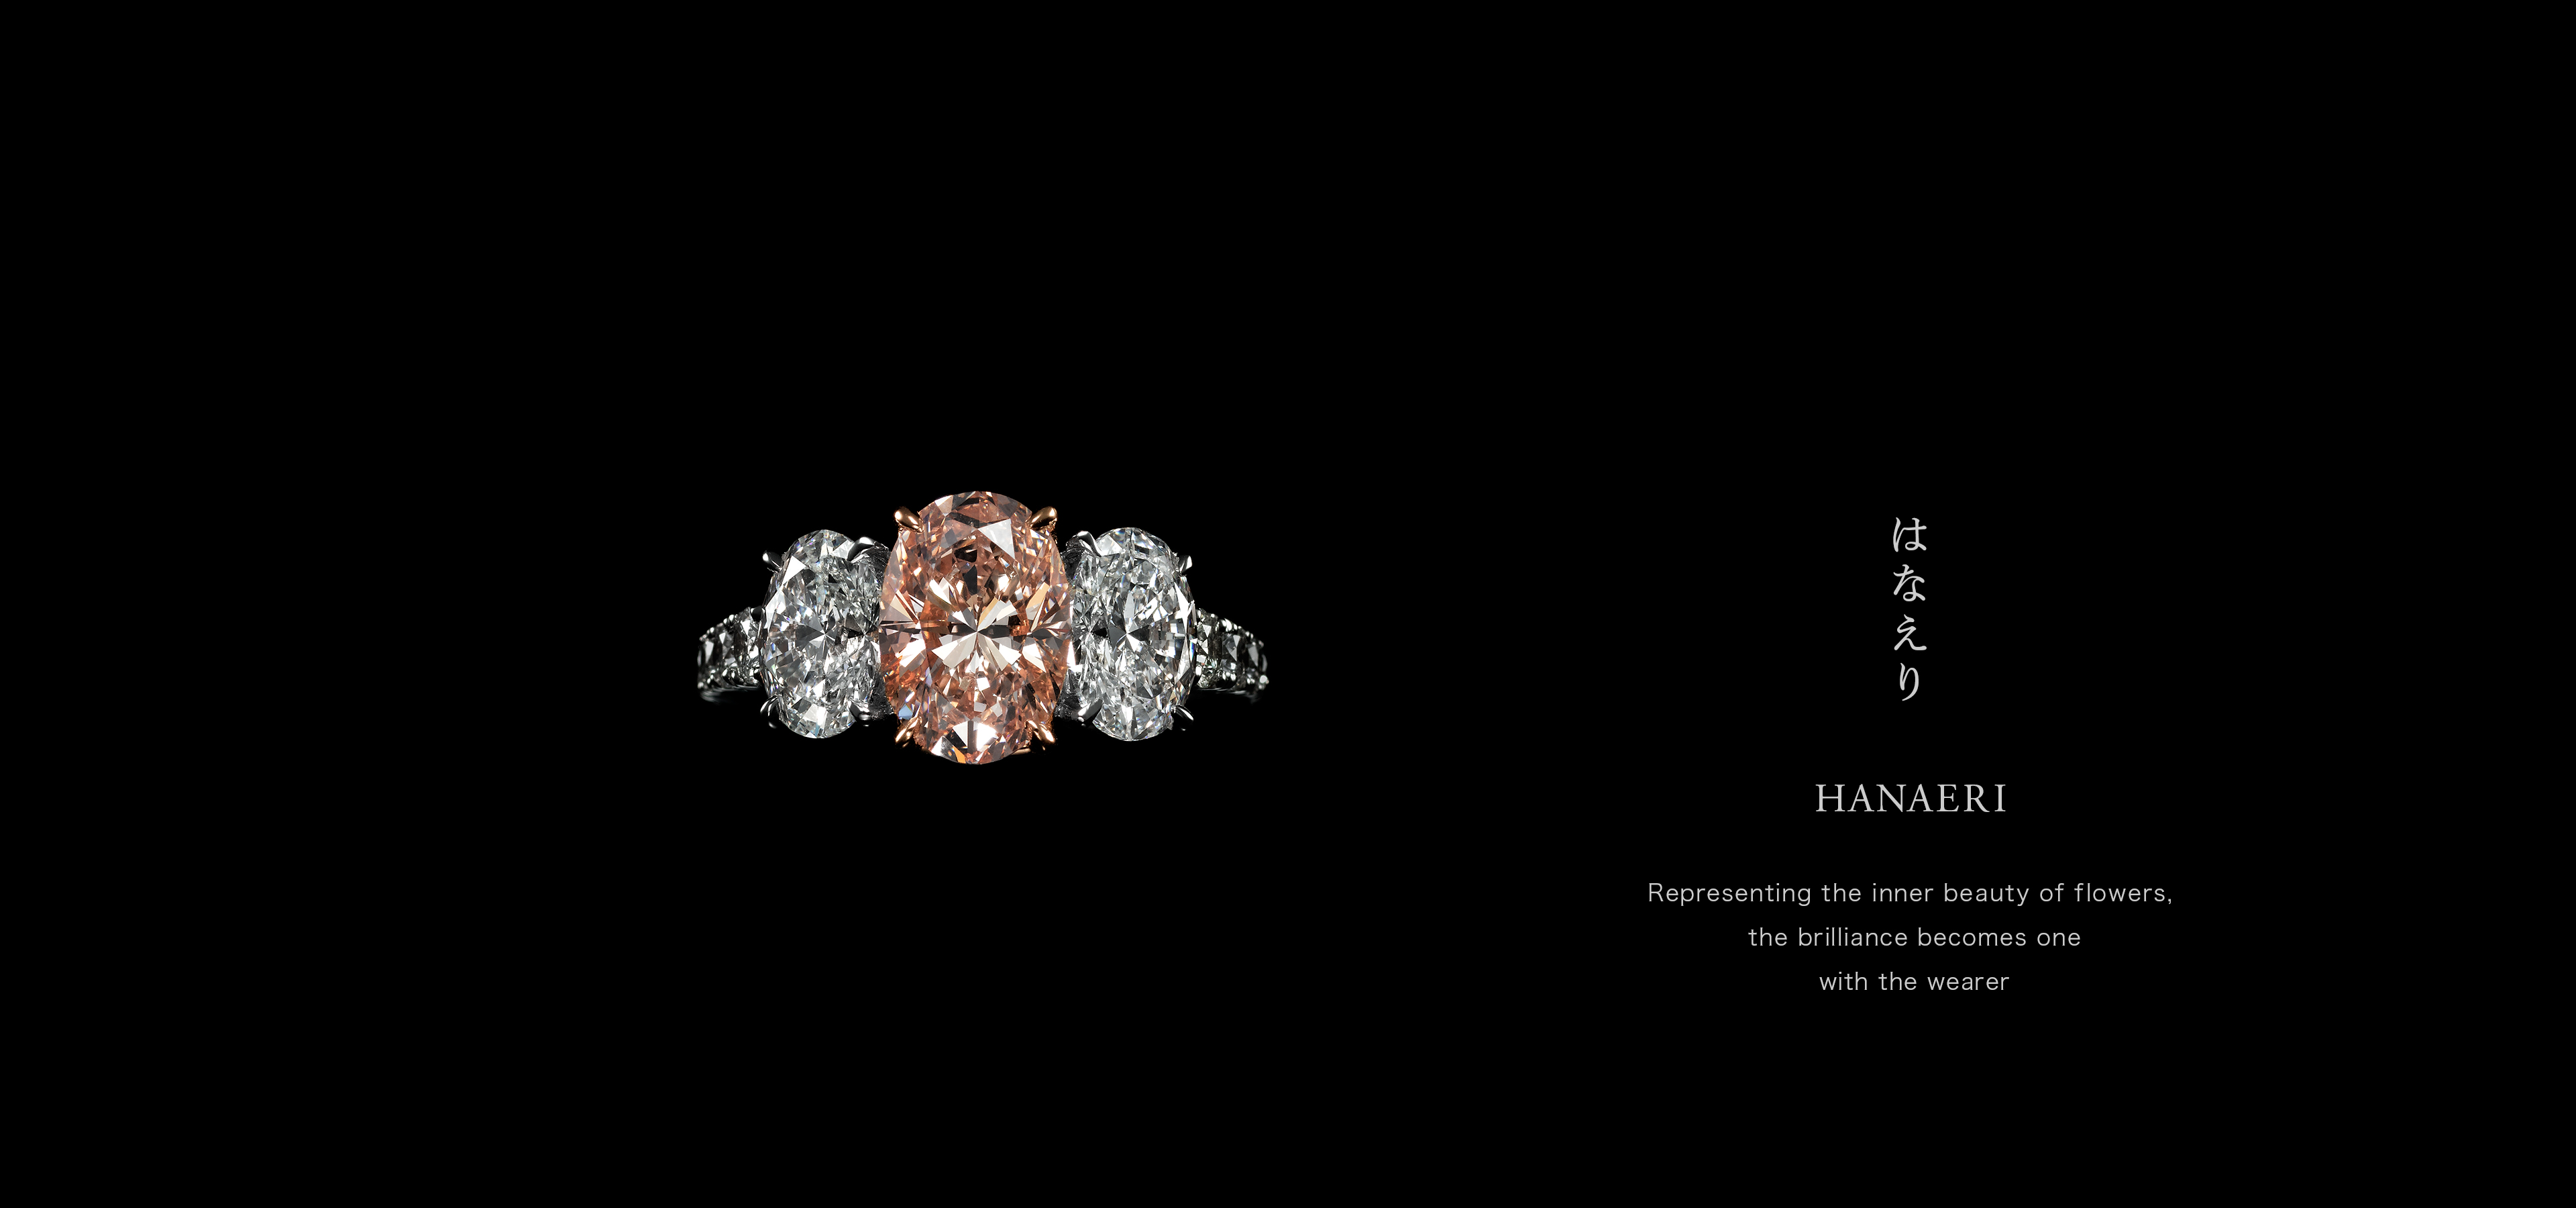 Hanaeri Representing the inner beauty of flowers, the brilliance becomes one with the wearer